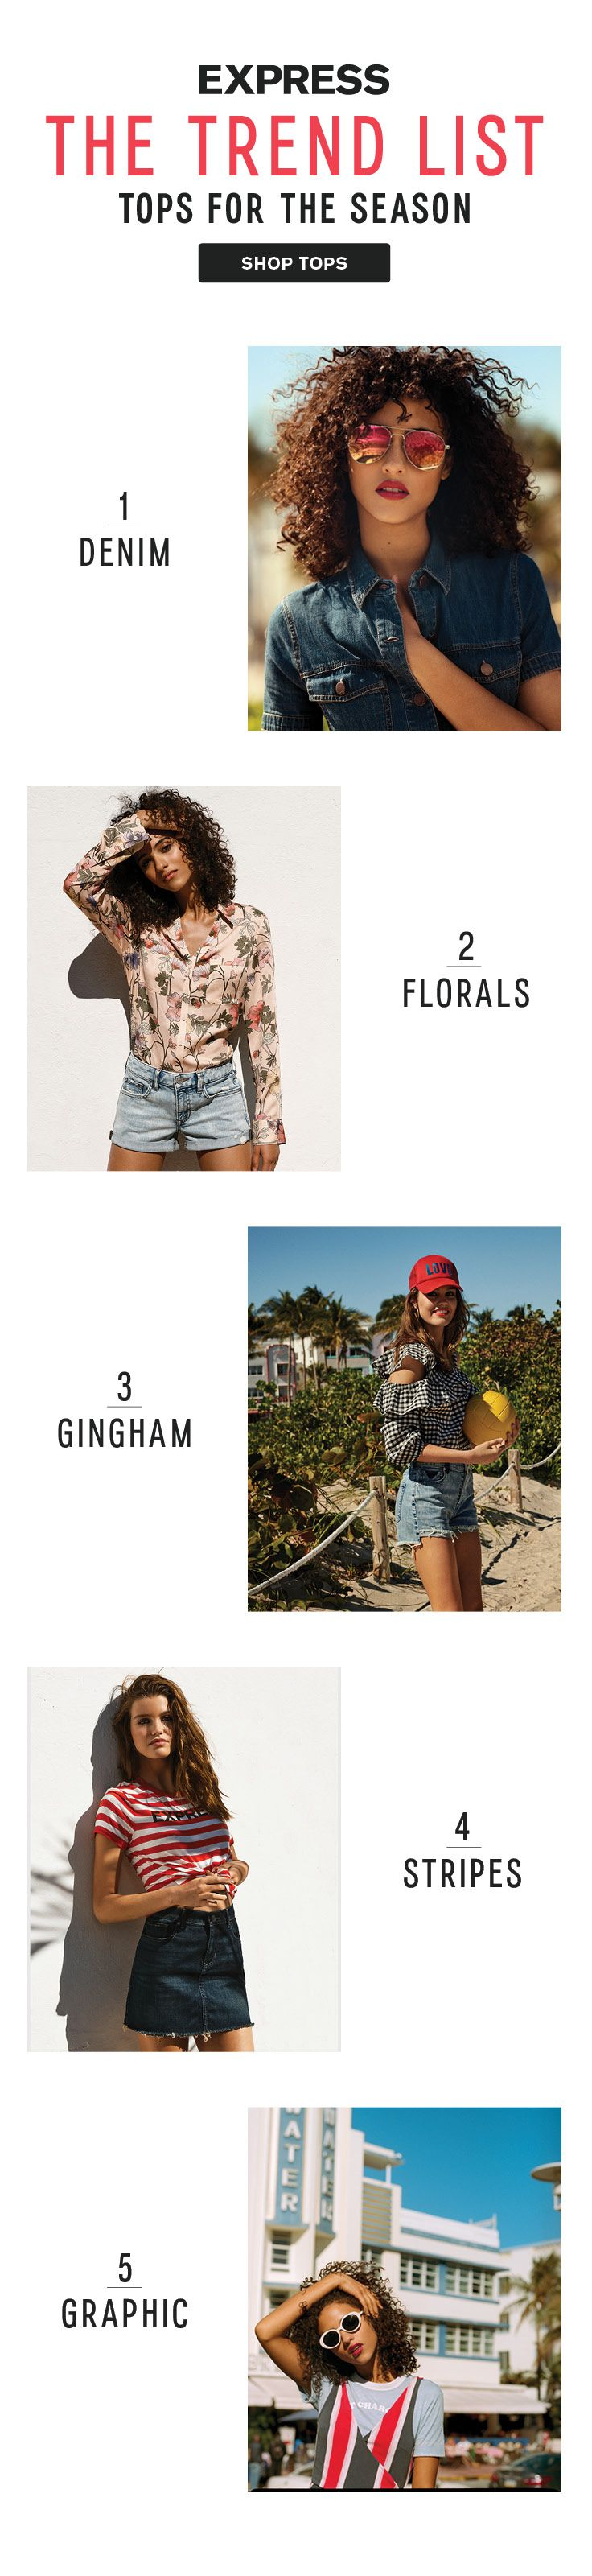 These are the top five spring trends taking over your Pin board. Make an impact in all over denim, floral tops and dresses, gingham tops and skirts and bold stripes Shop the top 5 trends for spring at Express.